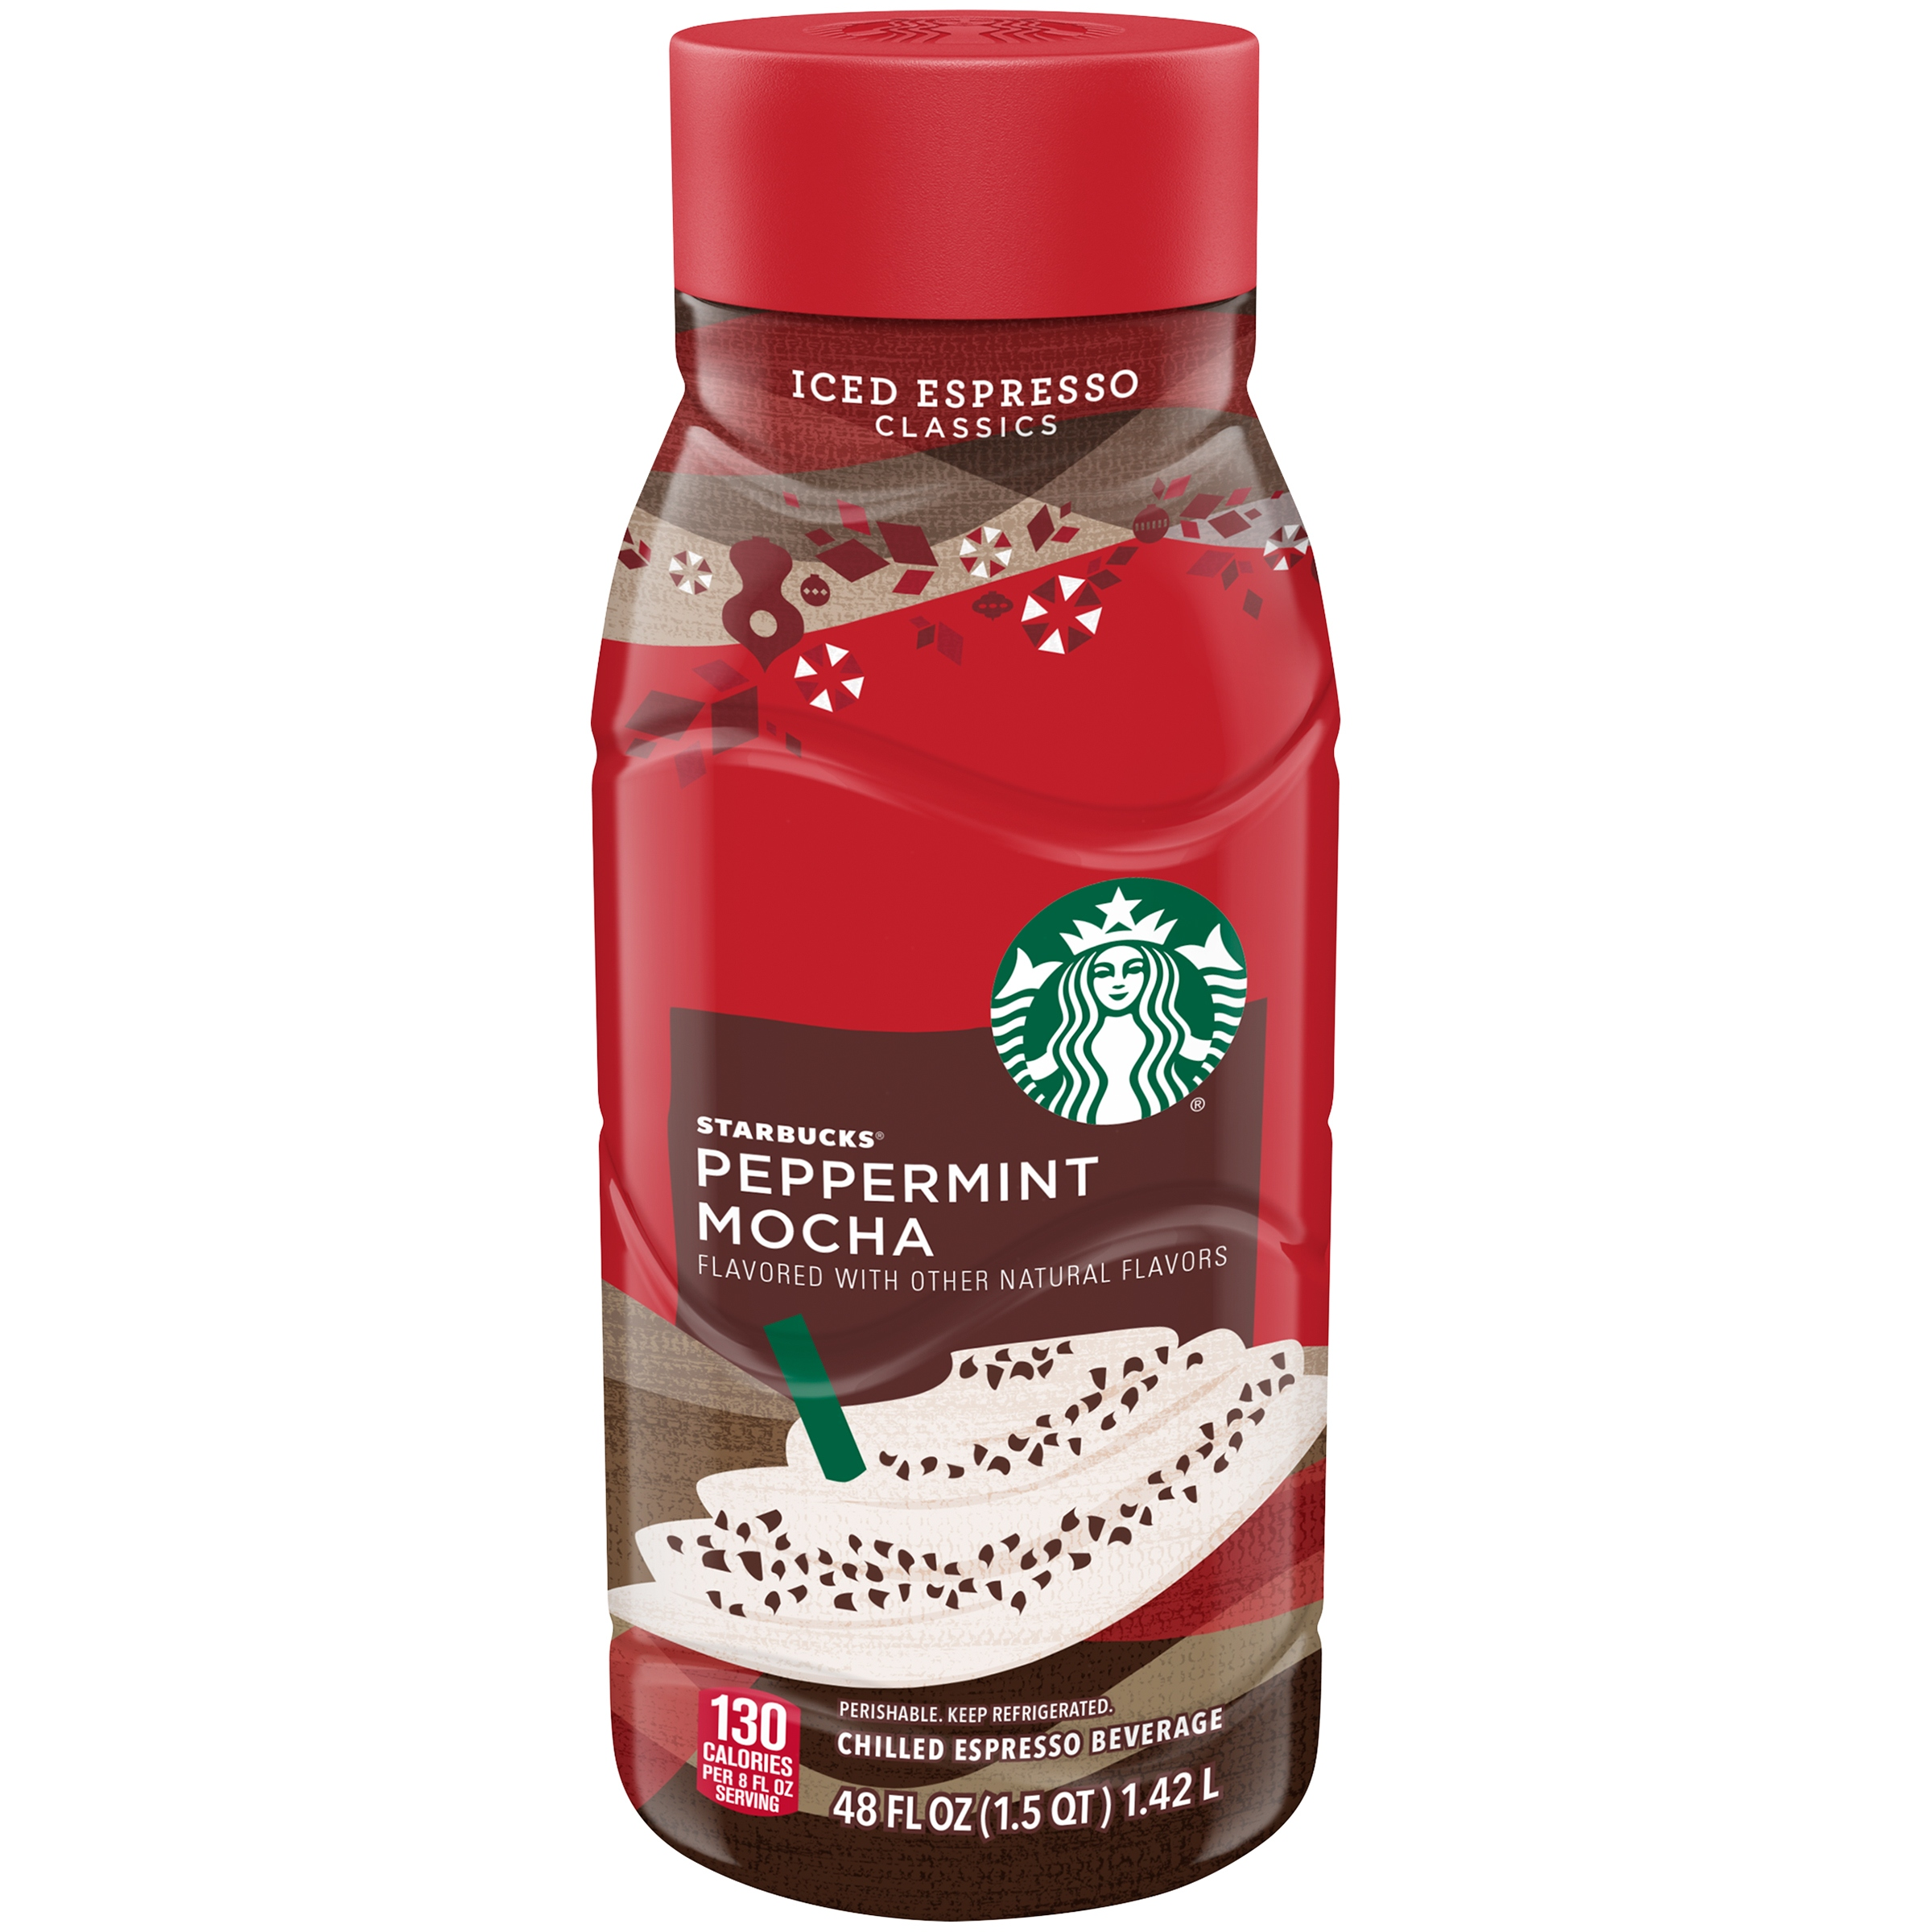 Starbucks Peppermint Mocha Chilled Espresso Beverage, 48 Fl. Oz.